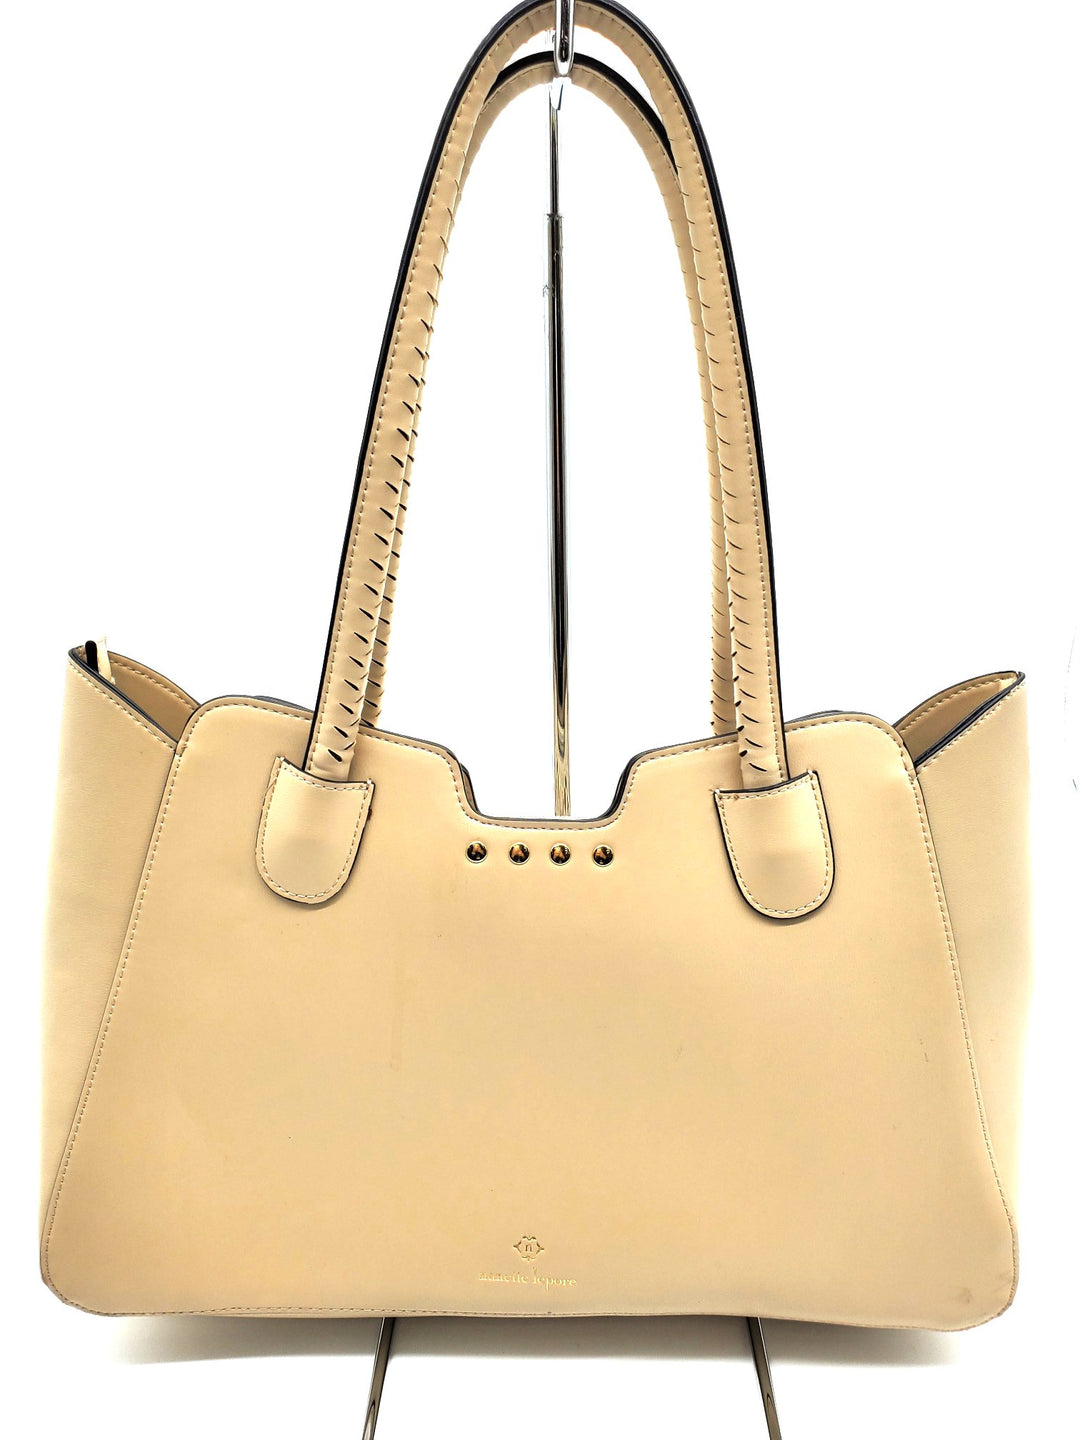 Handbag By Nanette Lepore  Size: Small - BRAND: NANETTE LEPORE <BR>STYLE: HANDBAG <BR>COLOR: BEIGE <BR>SIZE: SMALL <BR>SKU: 262-262101-1167<BR>AS IS